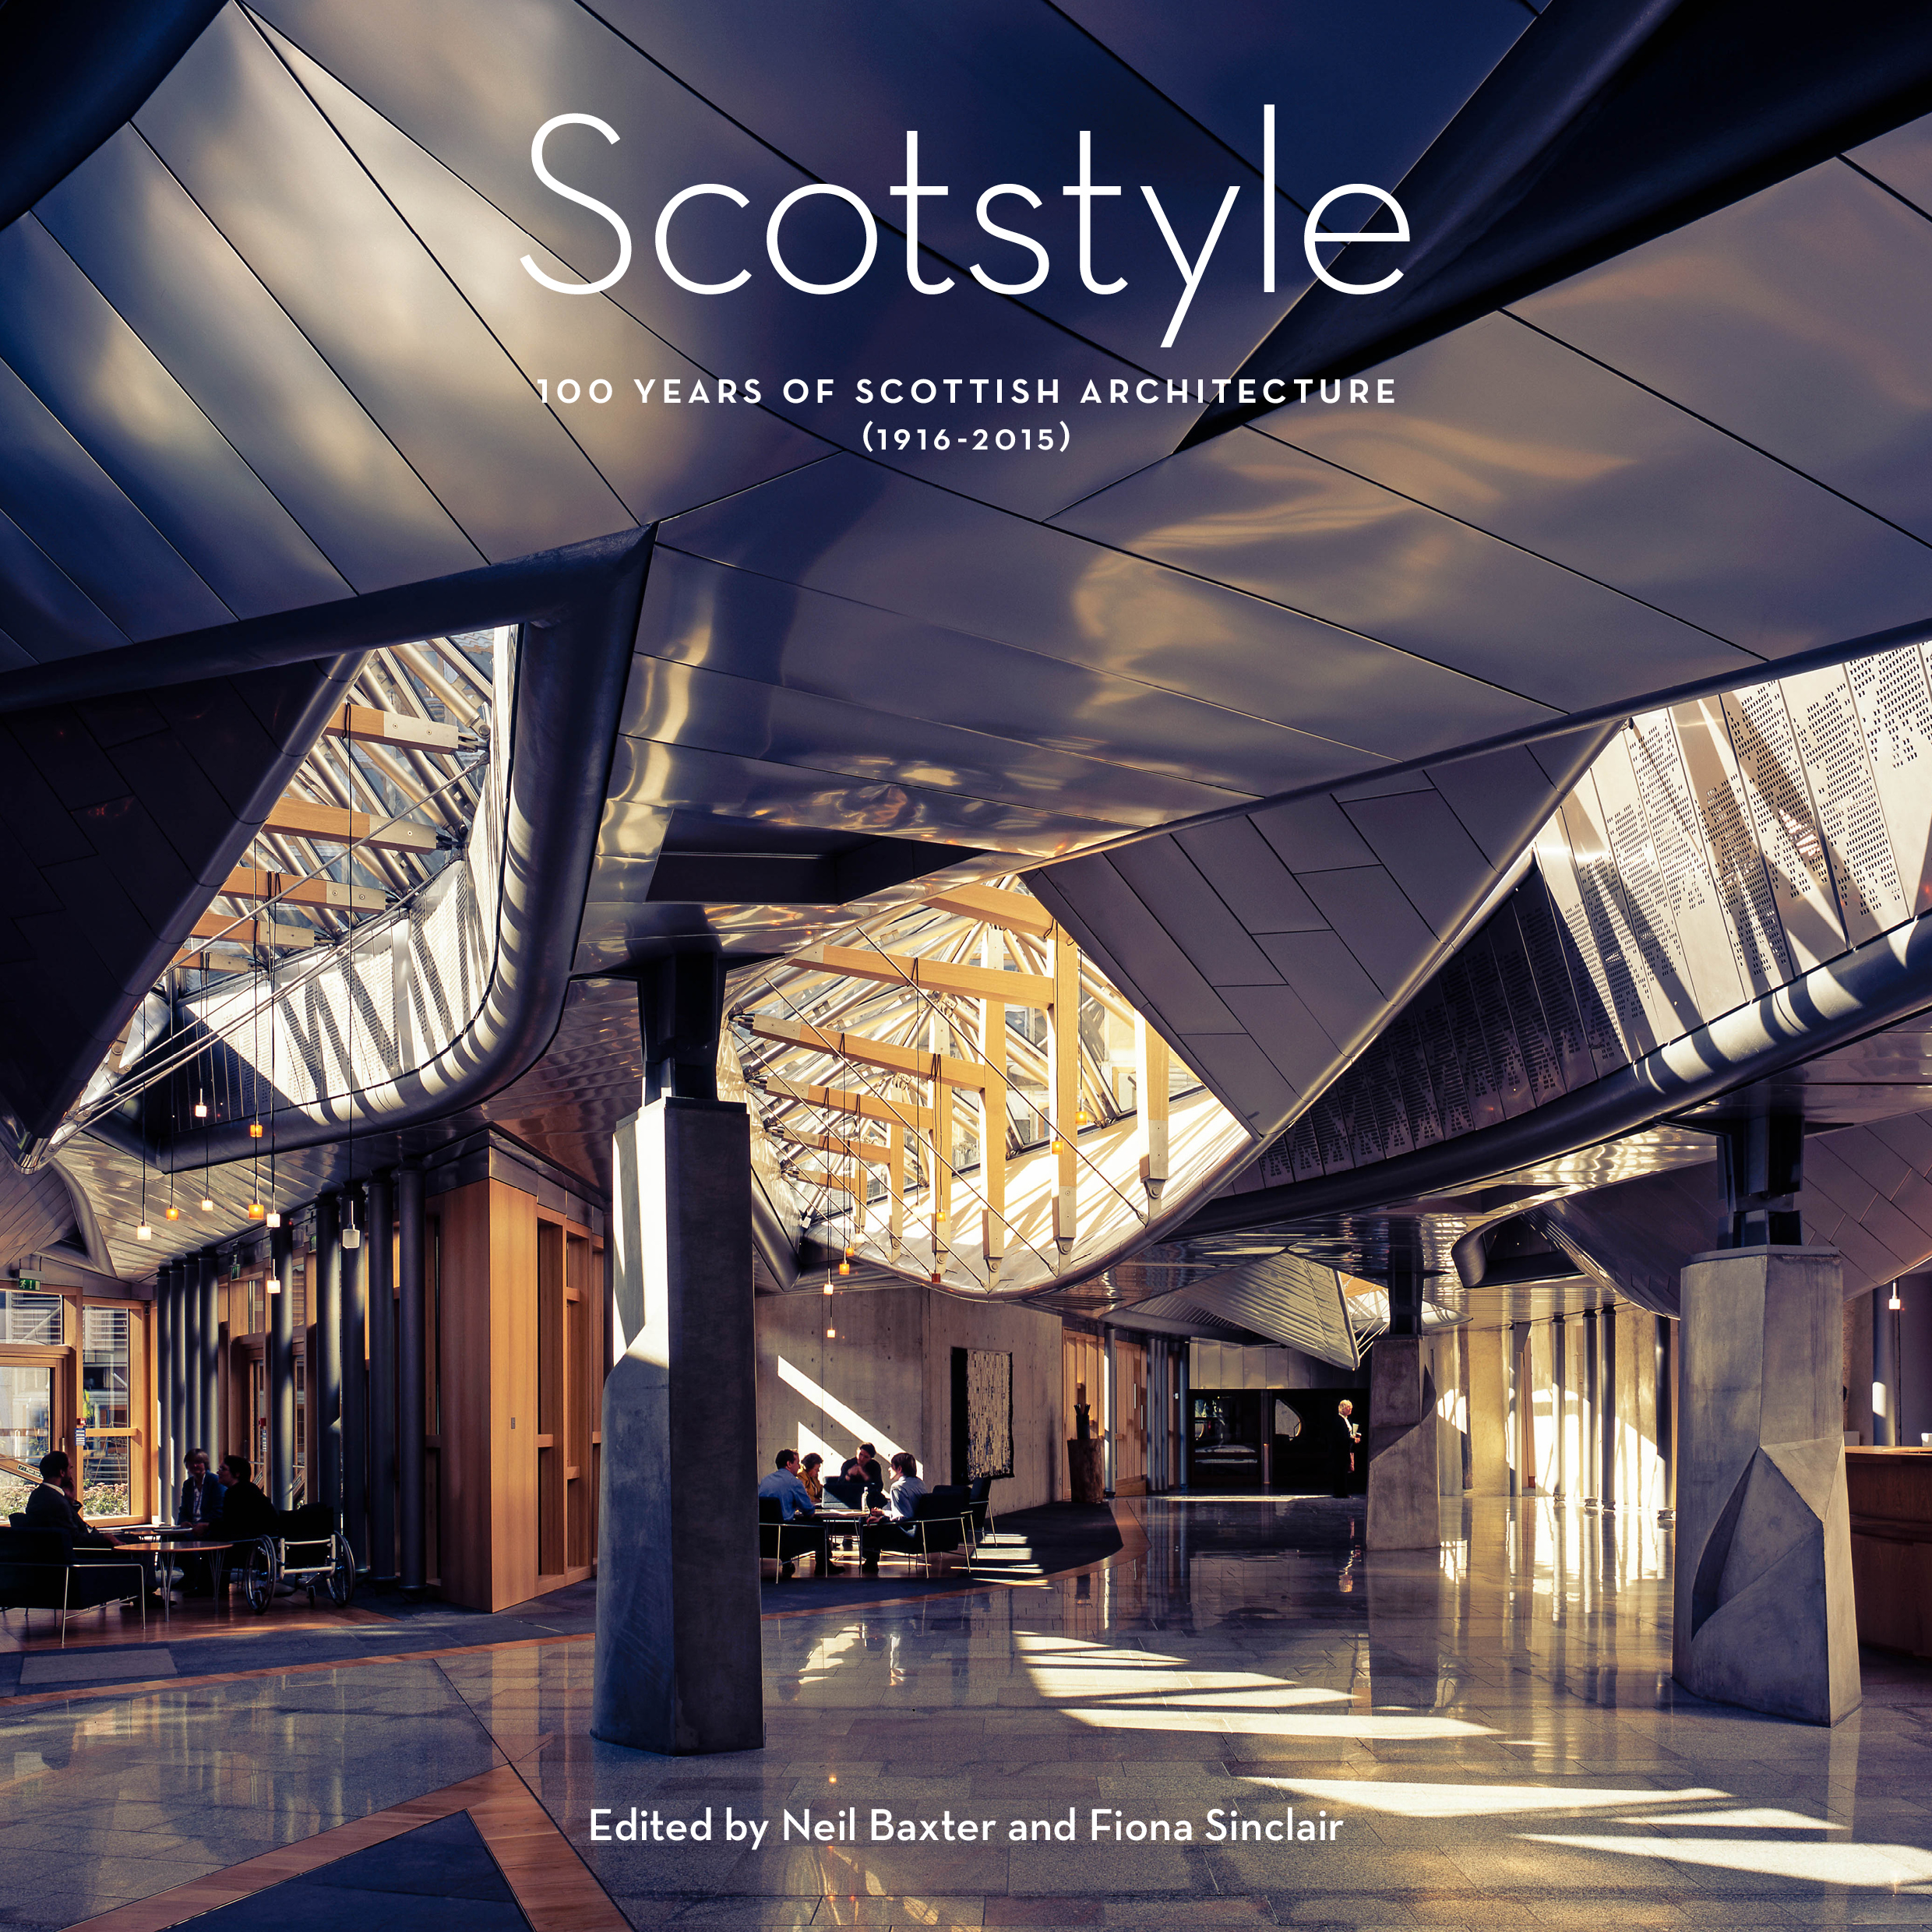 Scotstyle: 100 Years of Scottish Architecture